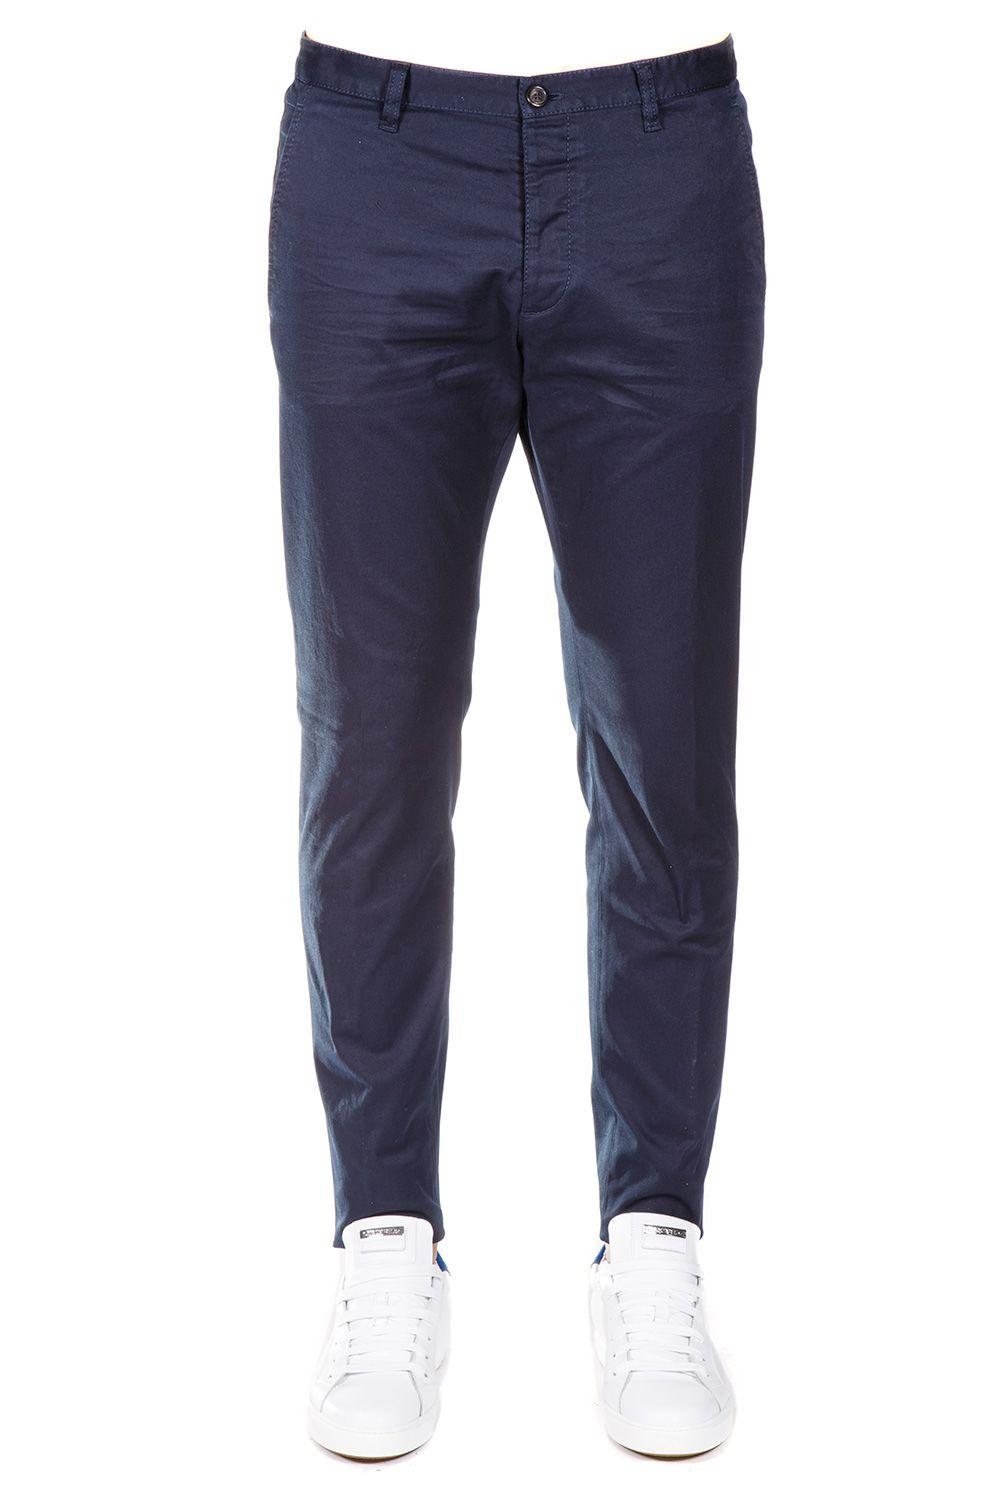 Dsquared2 Cotton Trousers In Blue